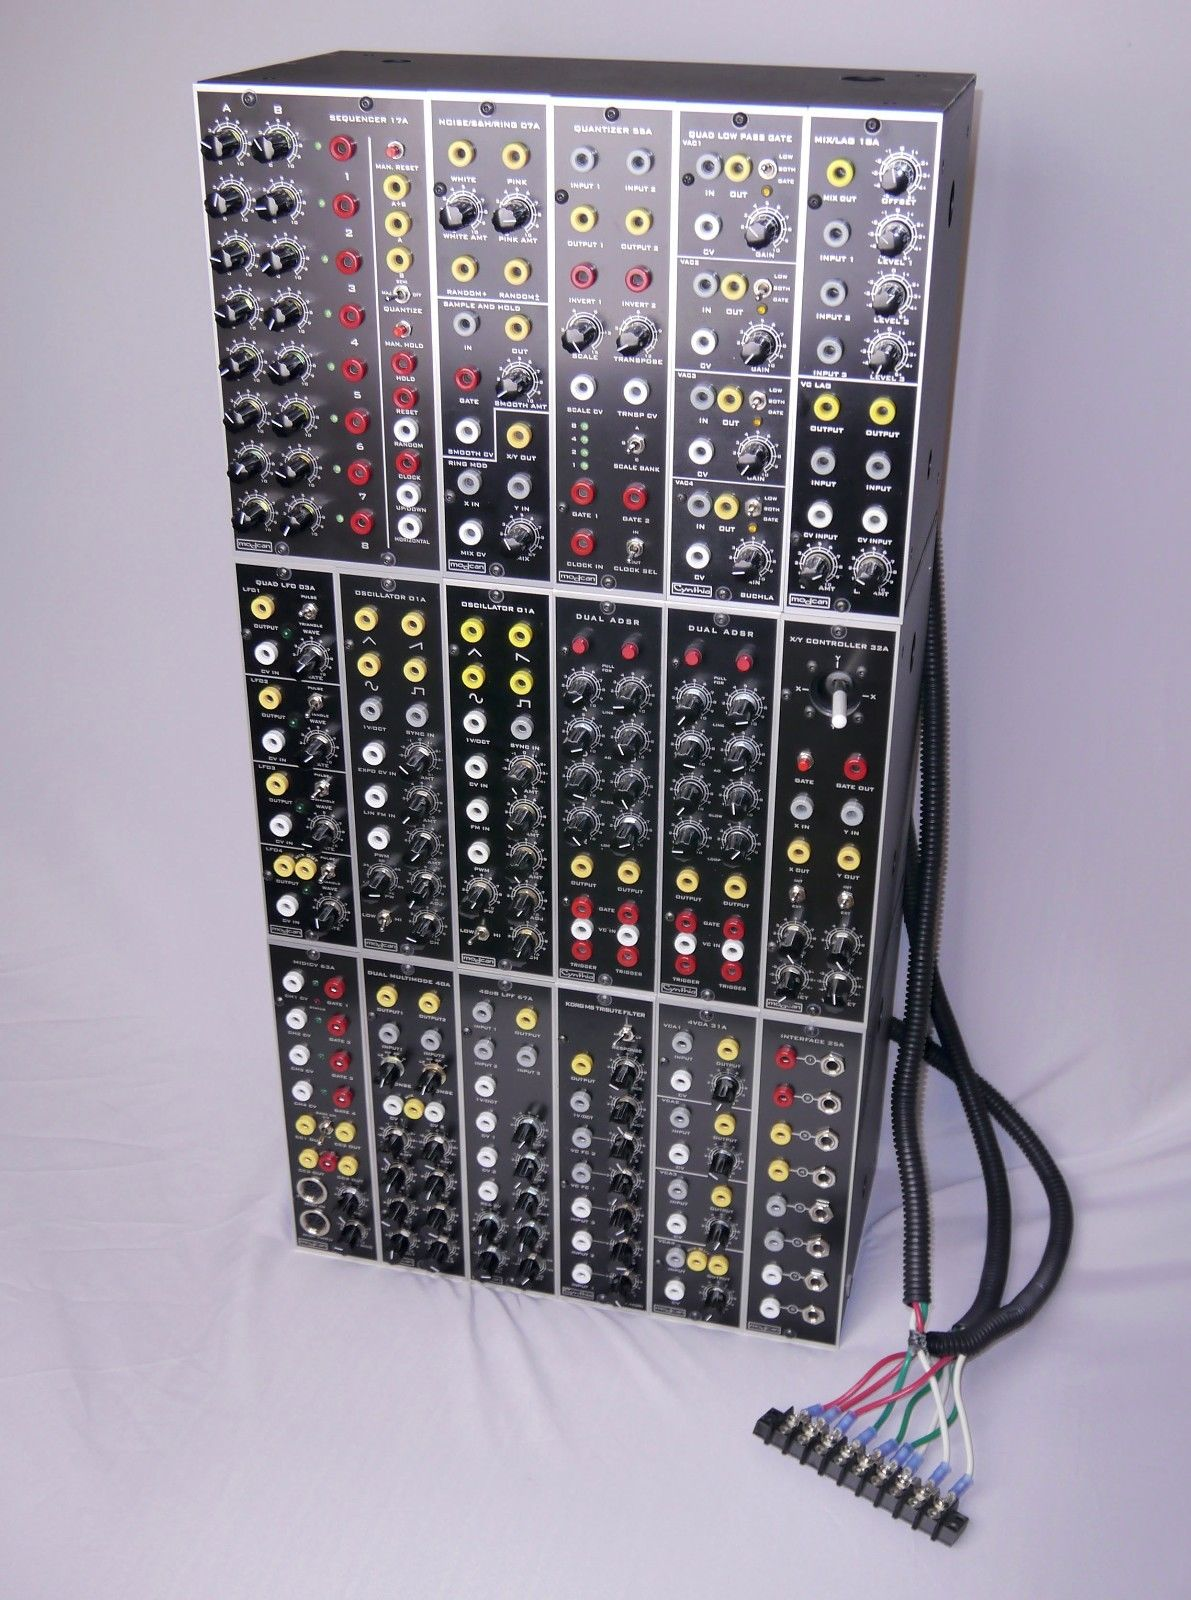 matrixsynth modcan a modular synthesizer. Black Bedroom Furniture Sets. Home Design Ideas